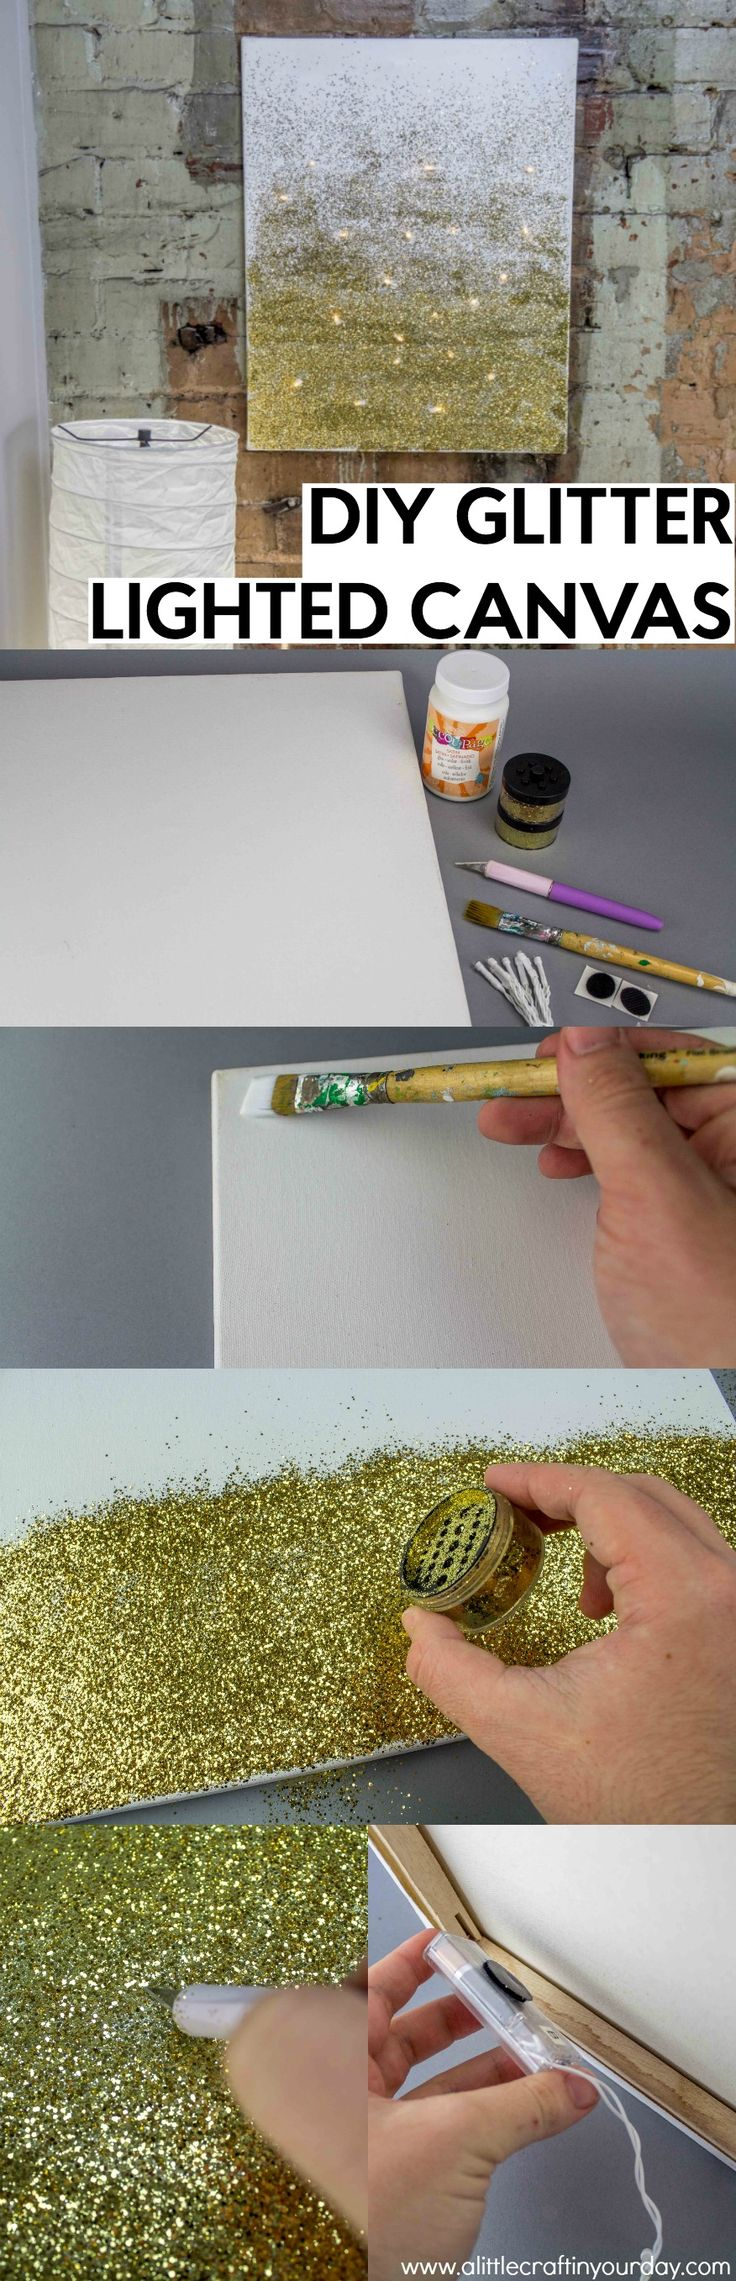 Today I have a beautiful, yet simple DIY to show all of you. What girl doesn't love glitter and fairy lights? This tutorial is for a DIY Glitter Lighted Canvas and you won't believe how simple it is to create! It just takes faith, trust, and a little bit of pixie dust!